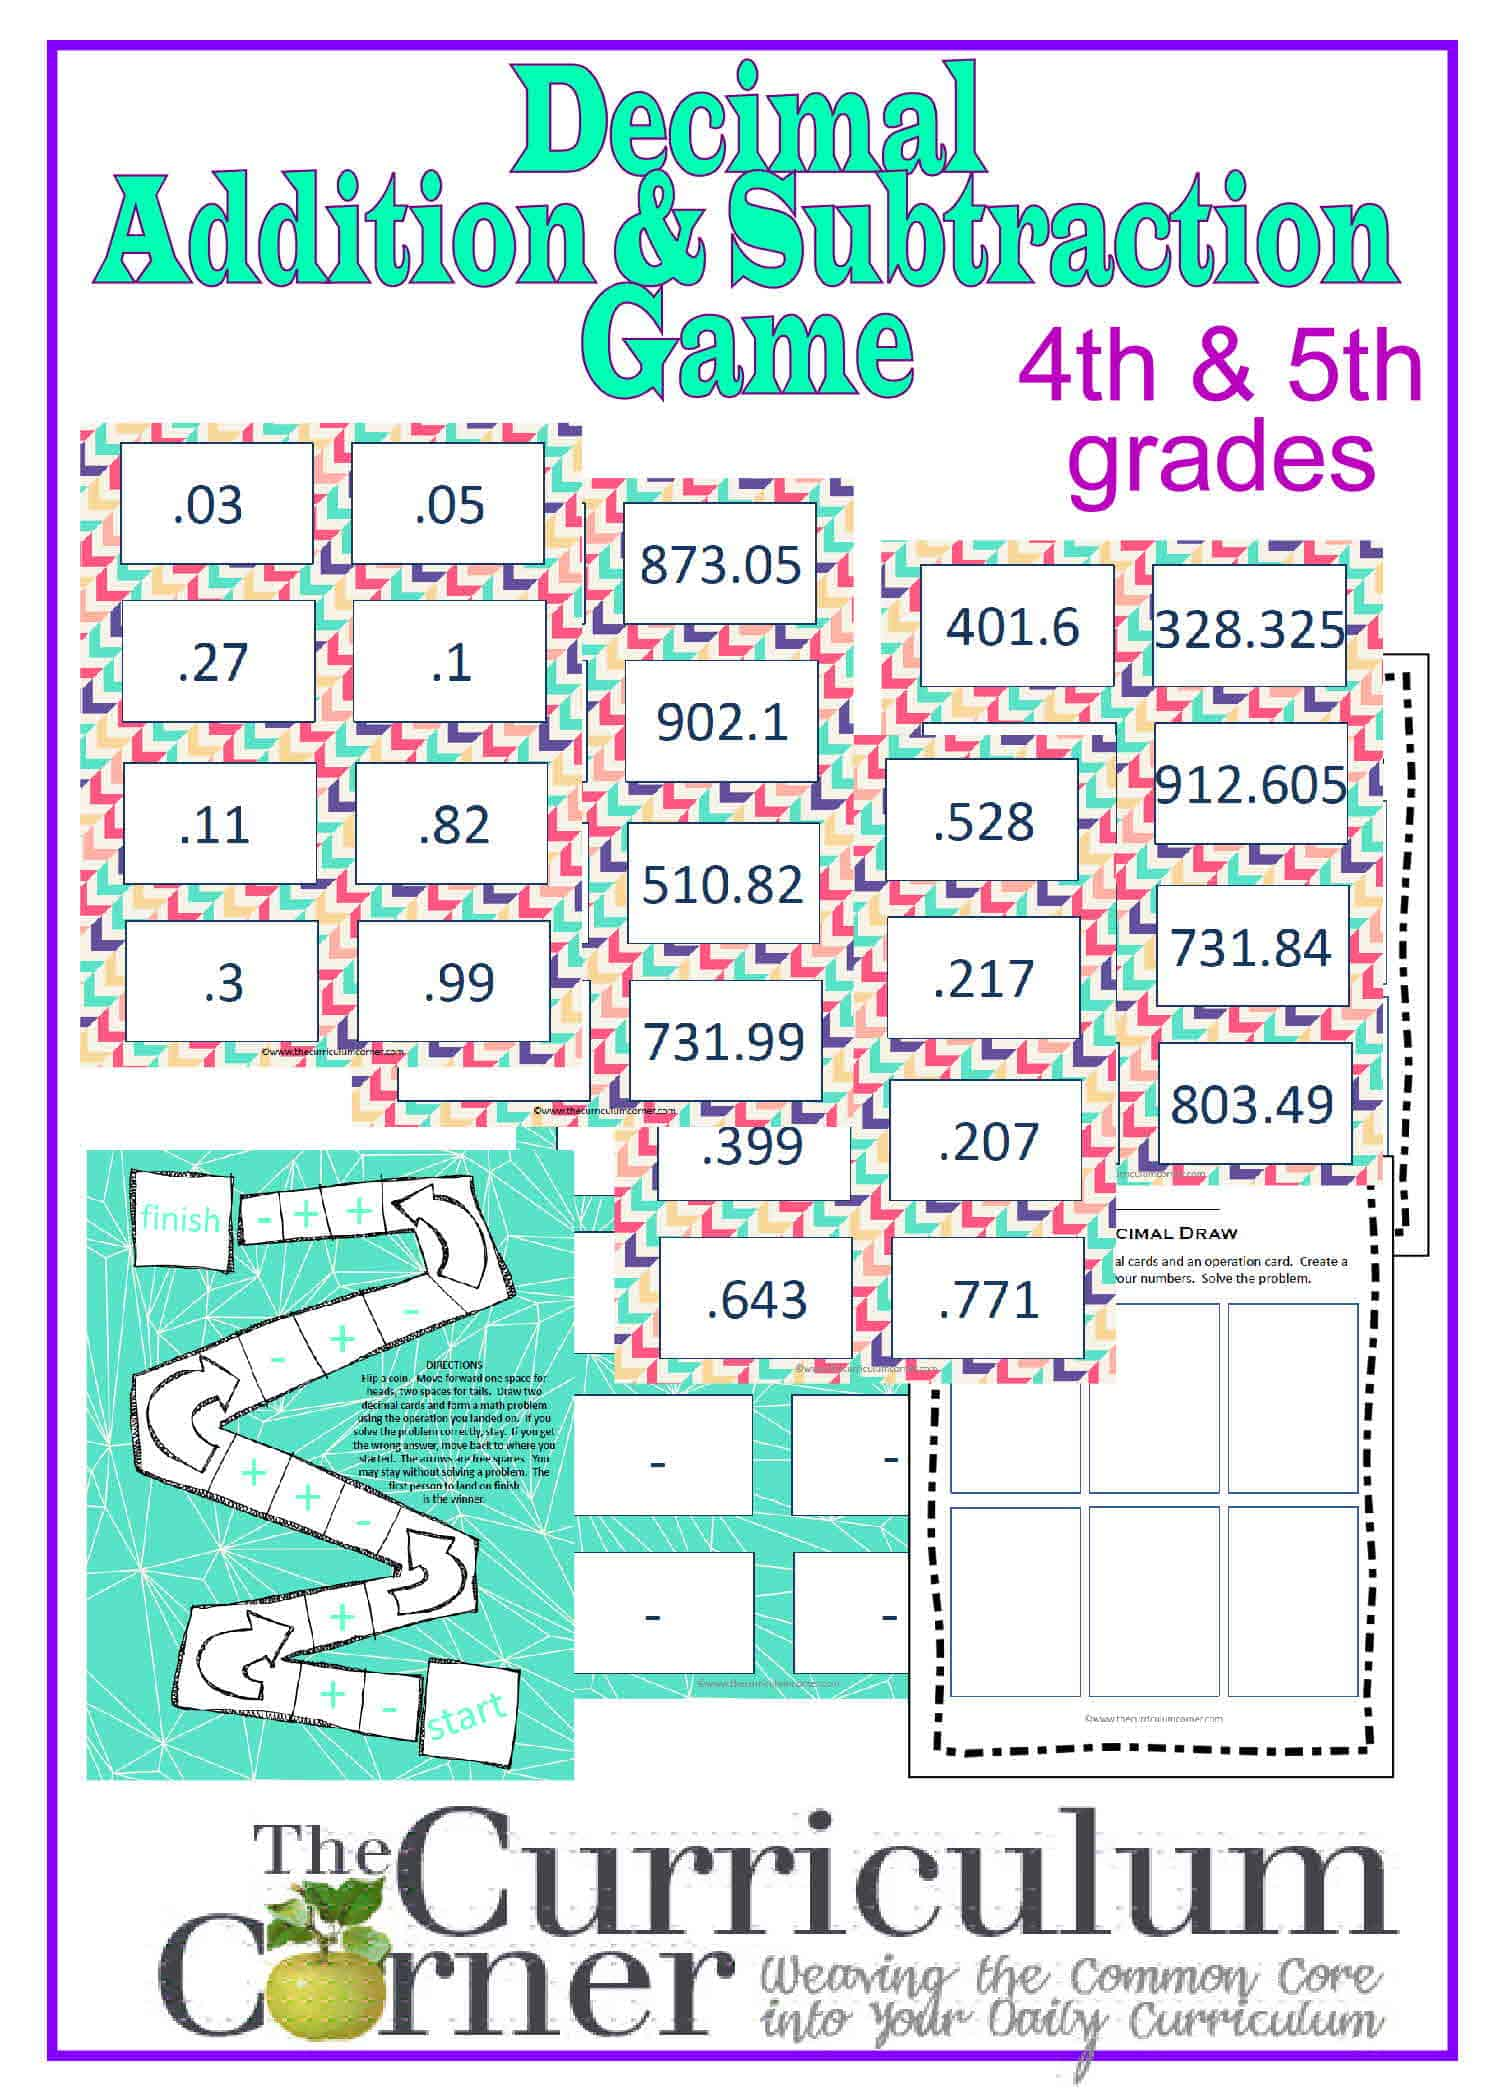 Worksheet Adding Decimals adding subtracting decimals game the curriculum corner 4 5 6 and for 4th 5th grades free from corner